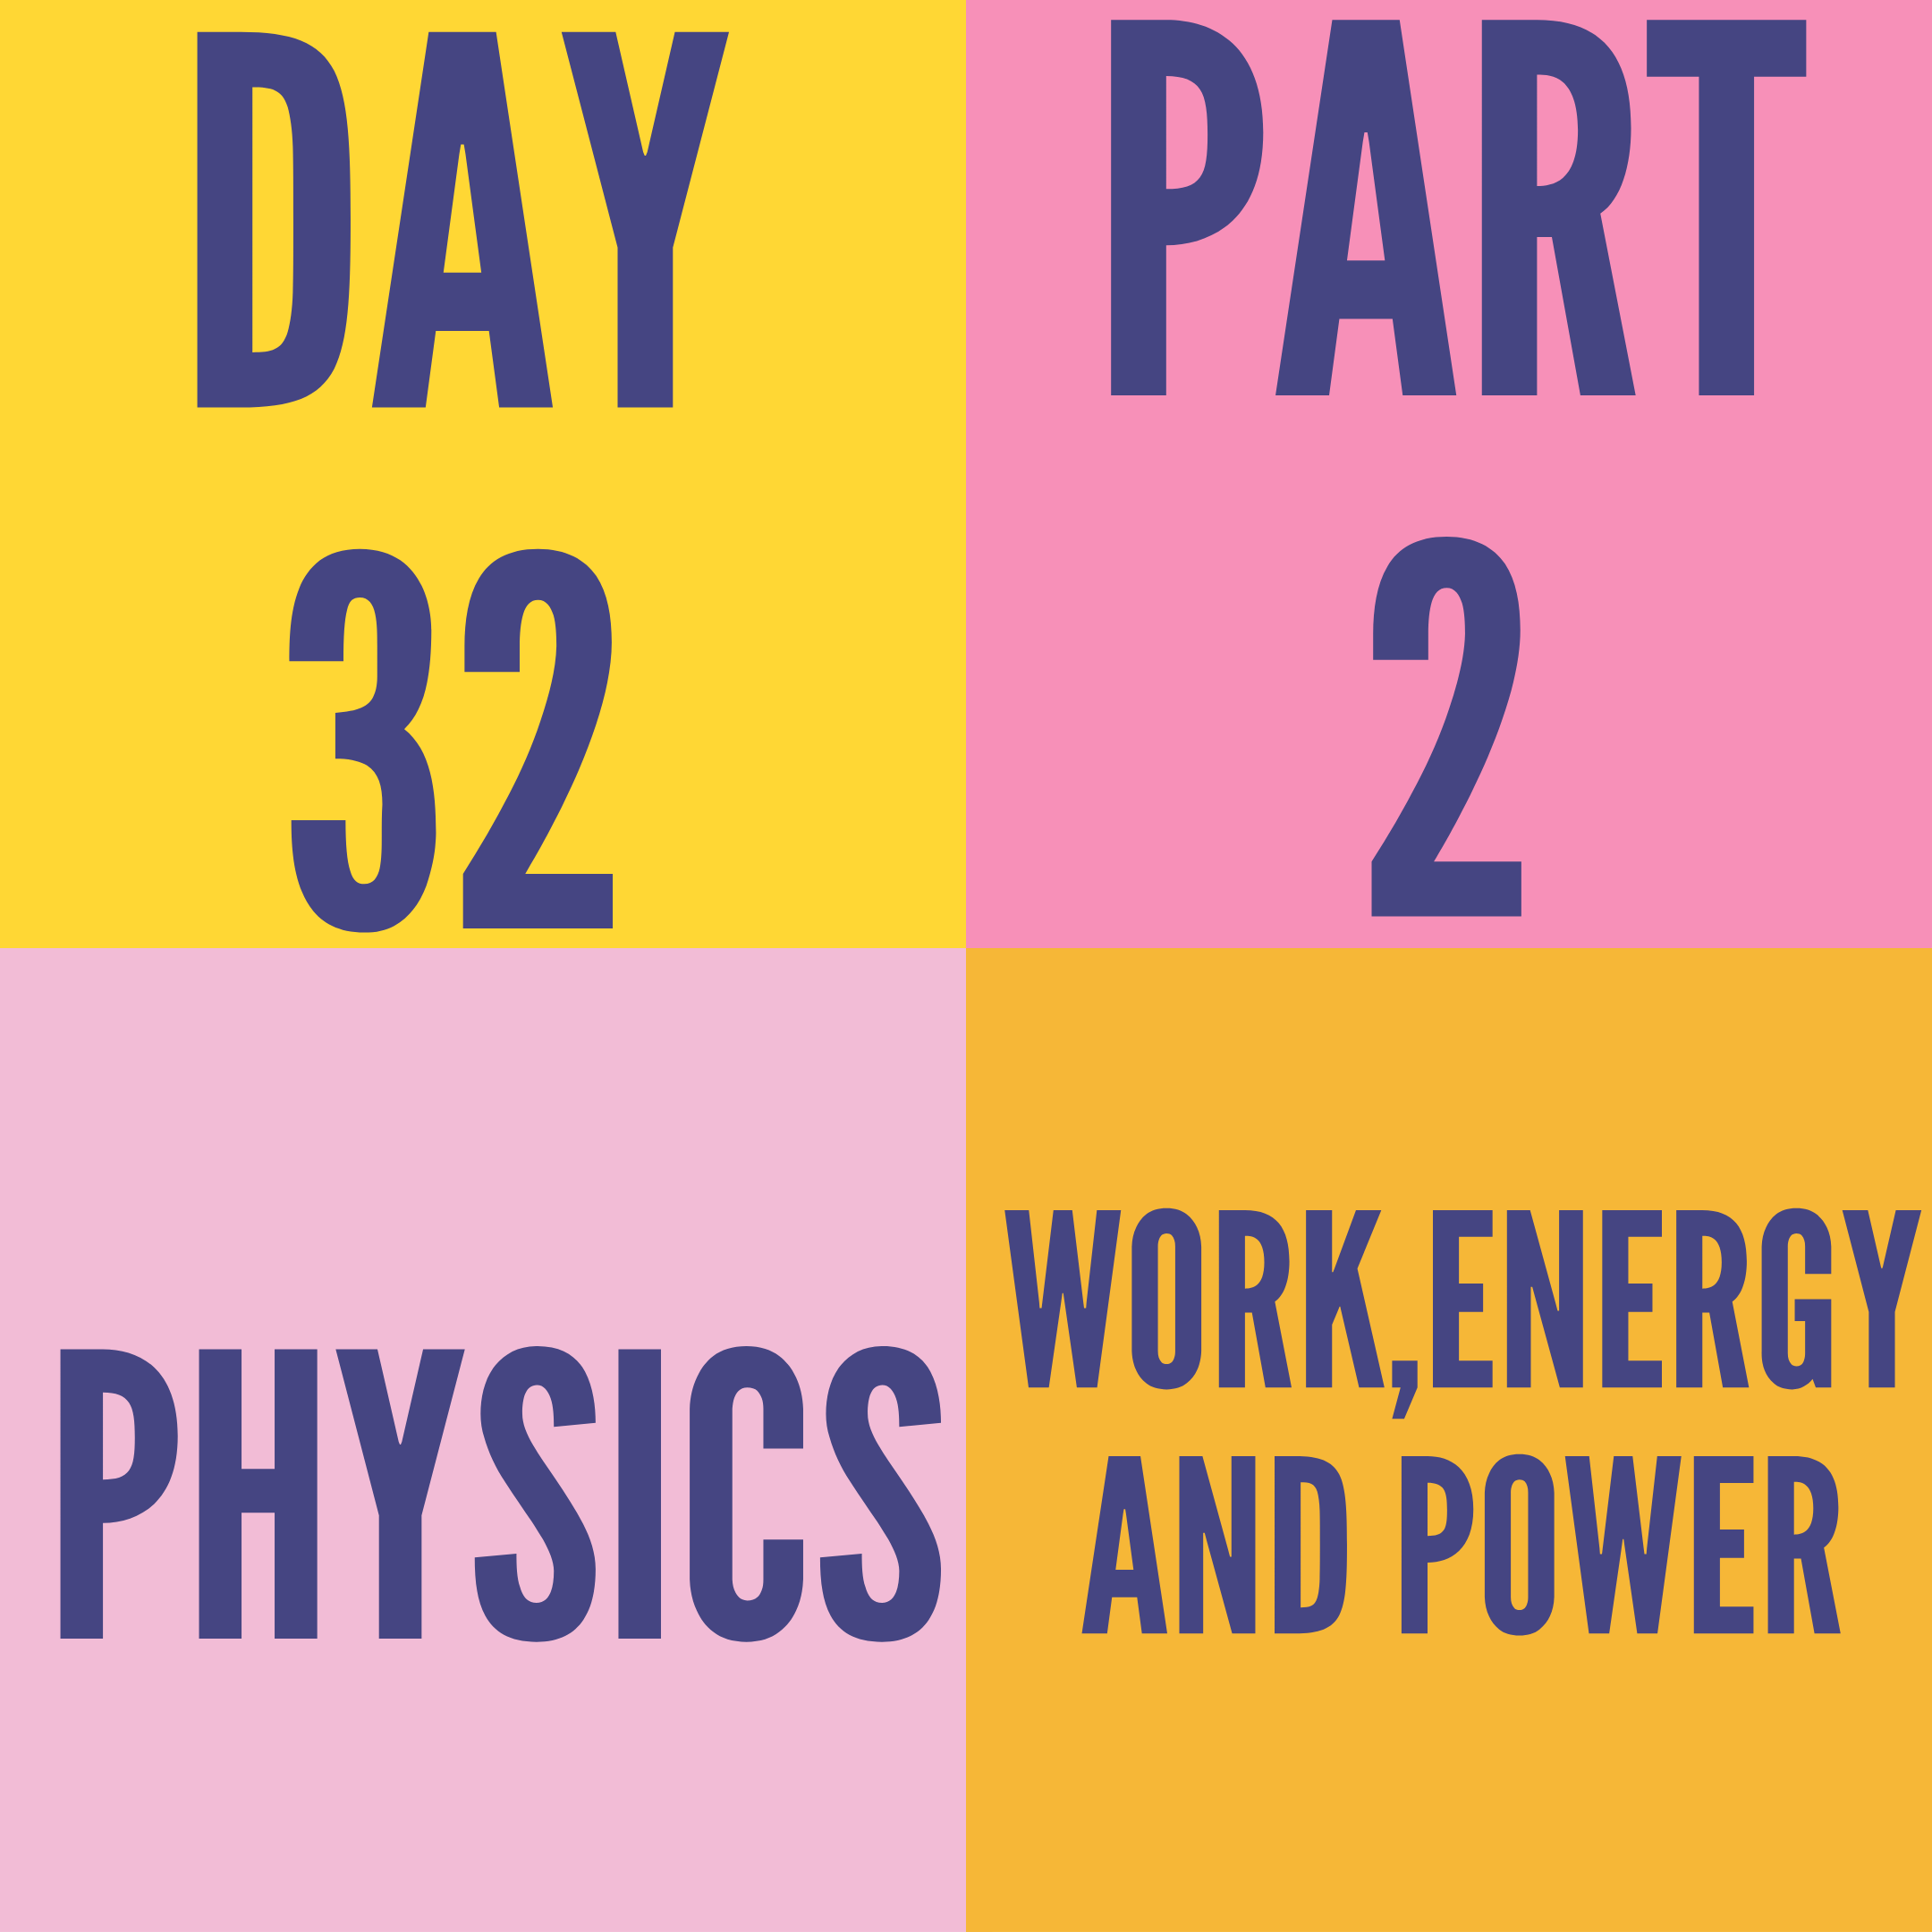 DAY-32 PART-2 WORK,ENERGY AND POWER